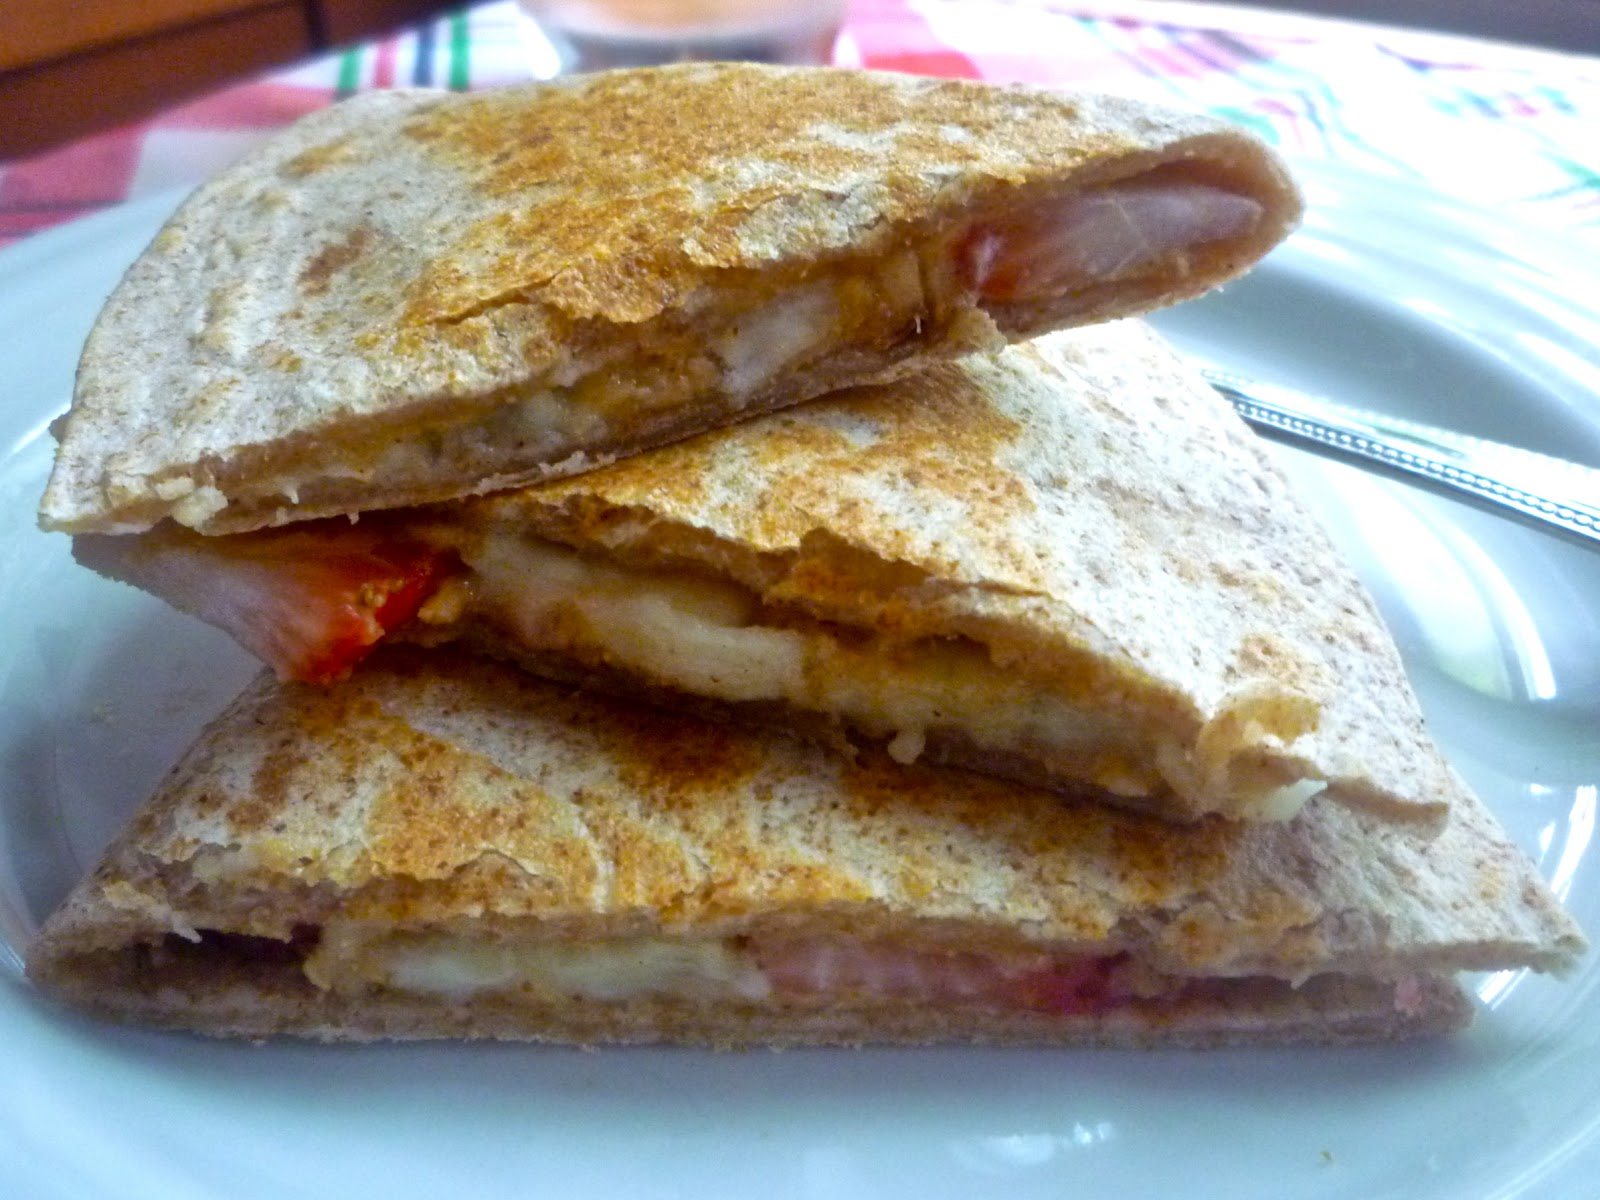 ... Cinnamon Peanut Butter and Banana Strawberry Peanut Butter Quesadilla